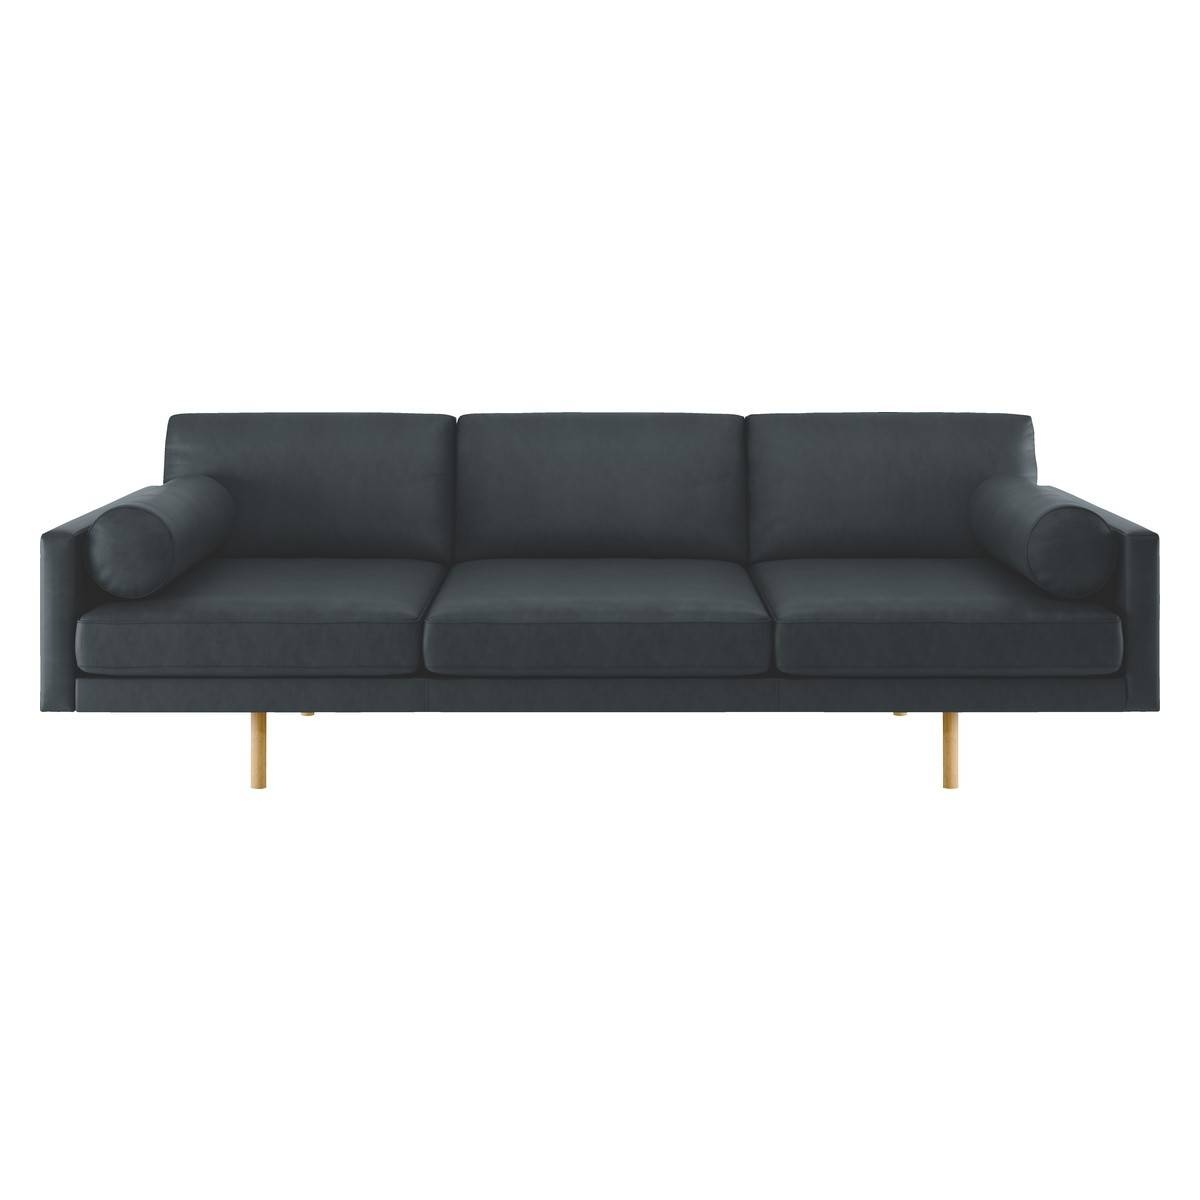 Spencer Dark Grey Luxury Leather 4 Seater Sofa, Oak Legs | Buy Now inside Four Seat Sofas (Image 28 of 30)